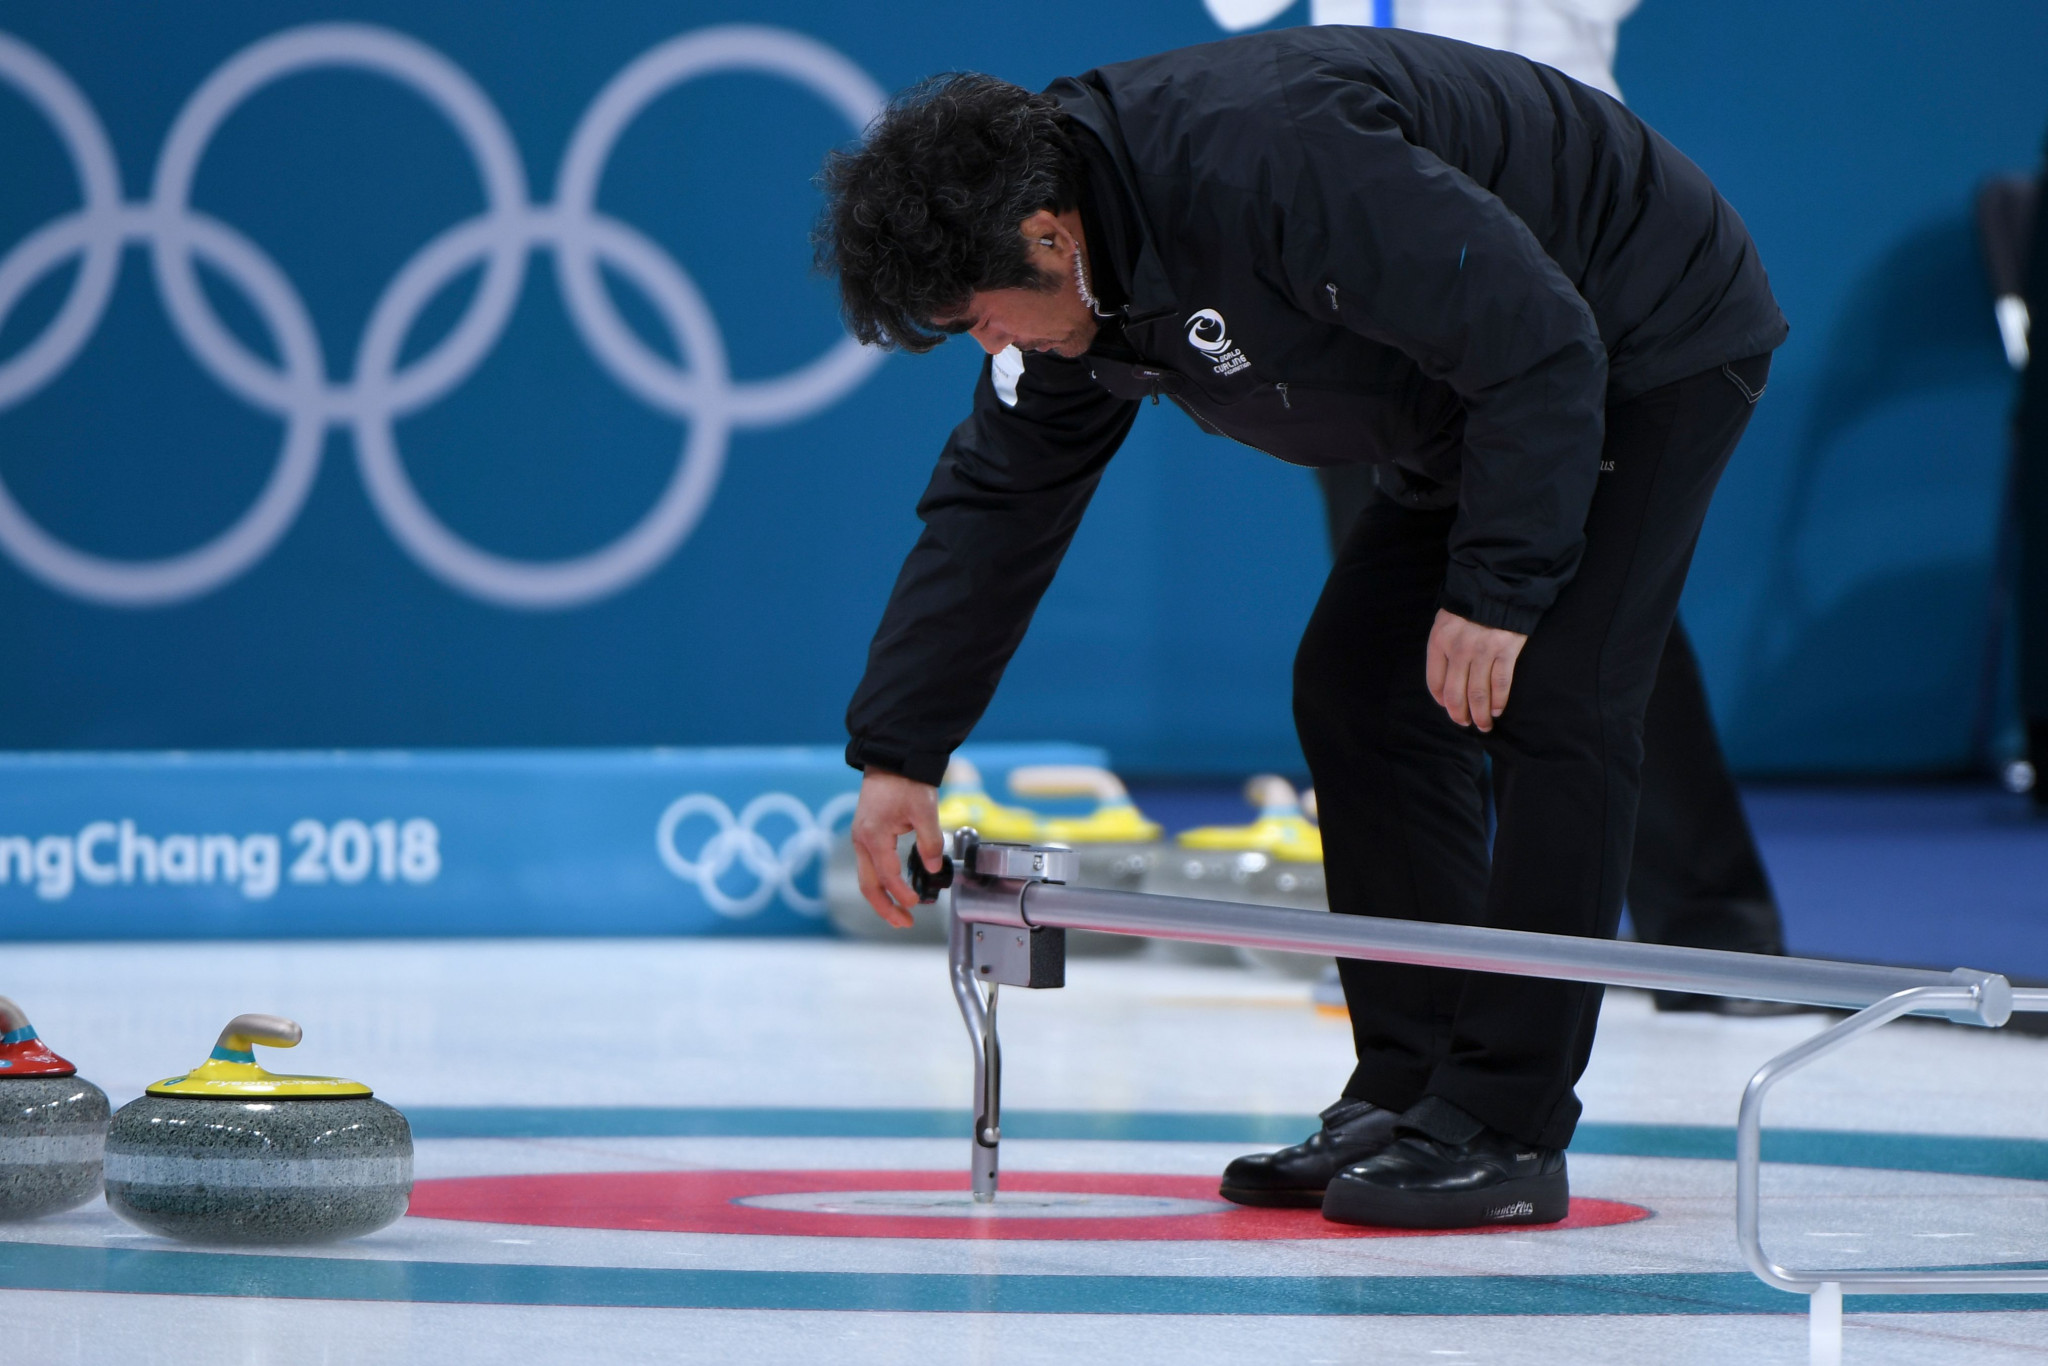 World Curling Federation announce technical officials for Beijing 2022